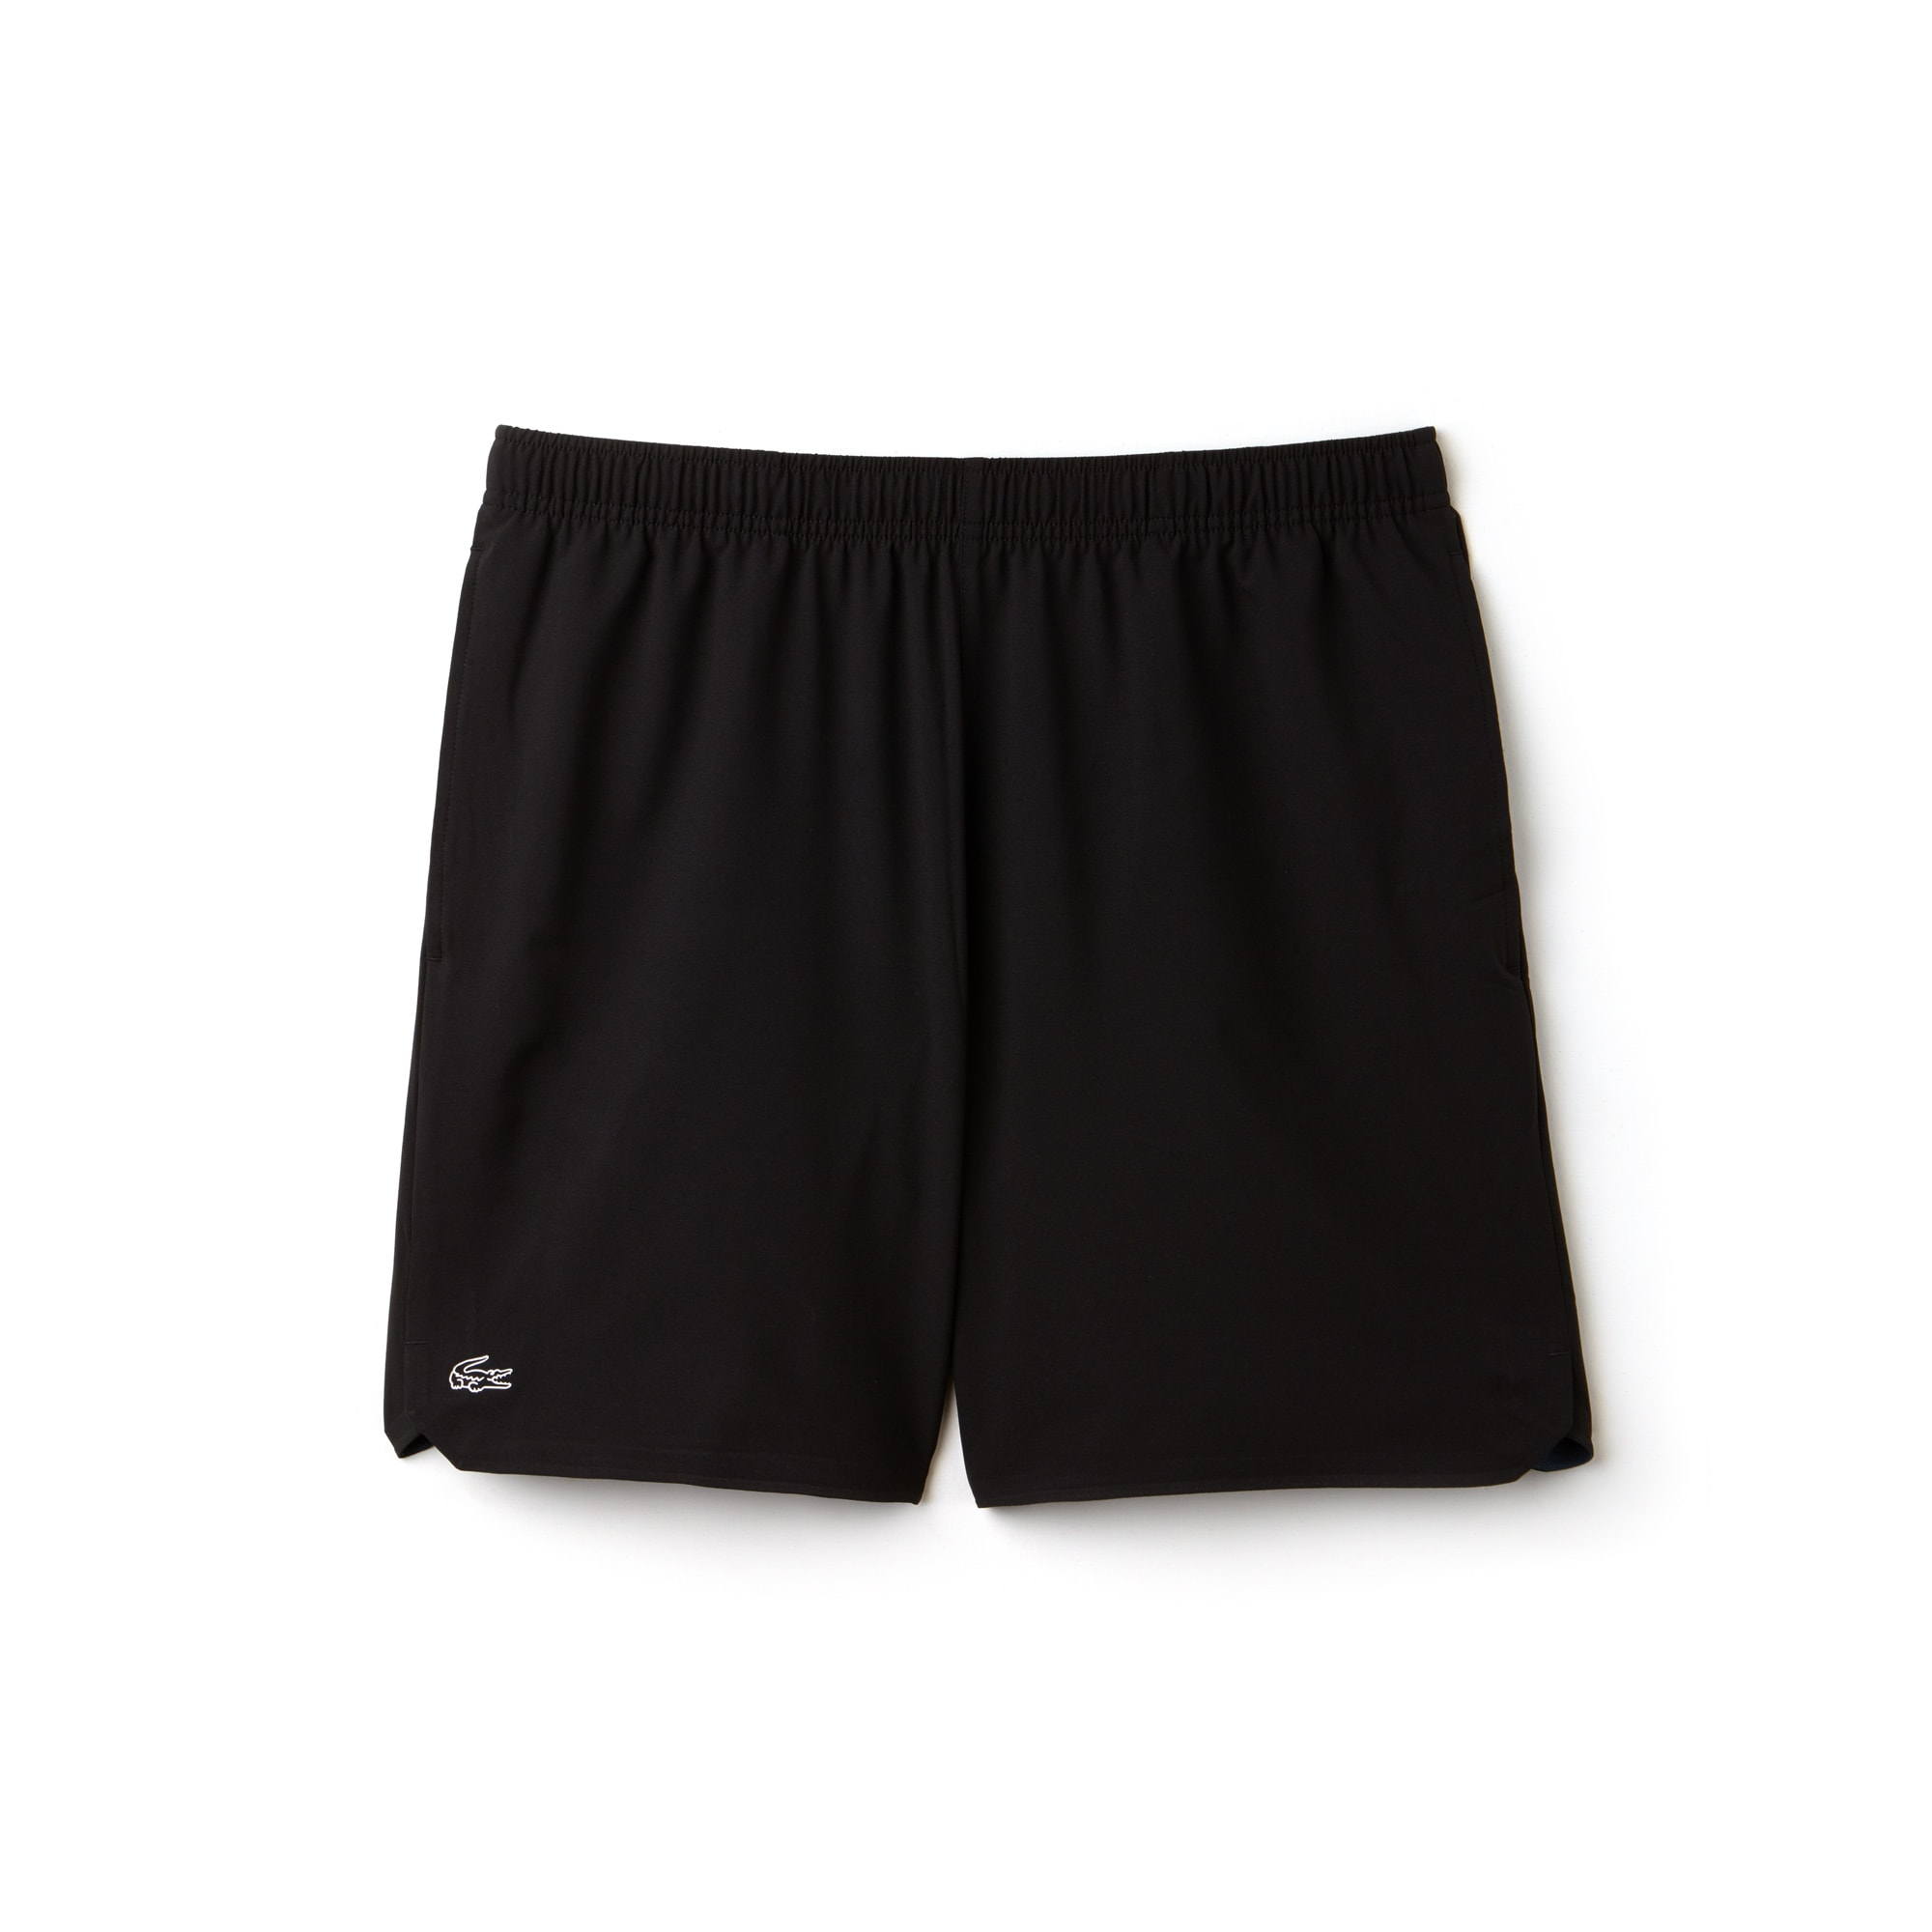 Men's Lacoste SPORT Technical Tennis Shorts